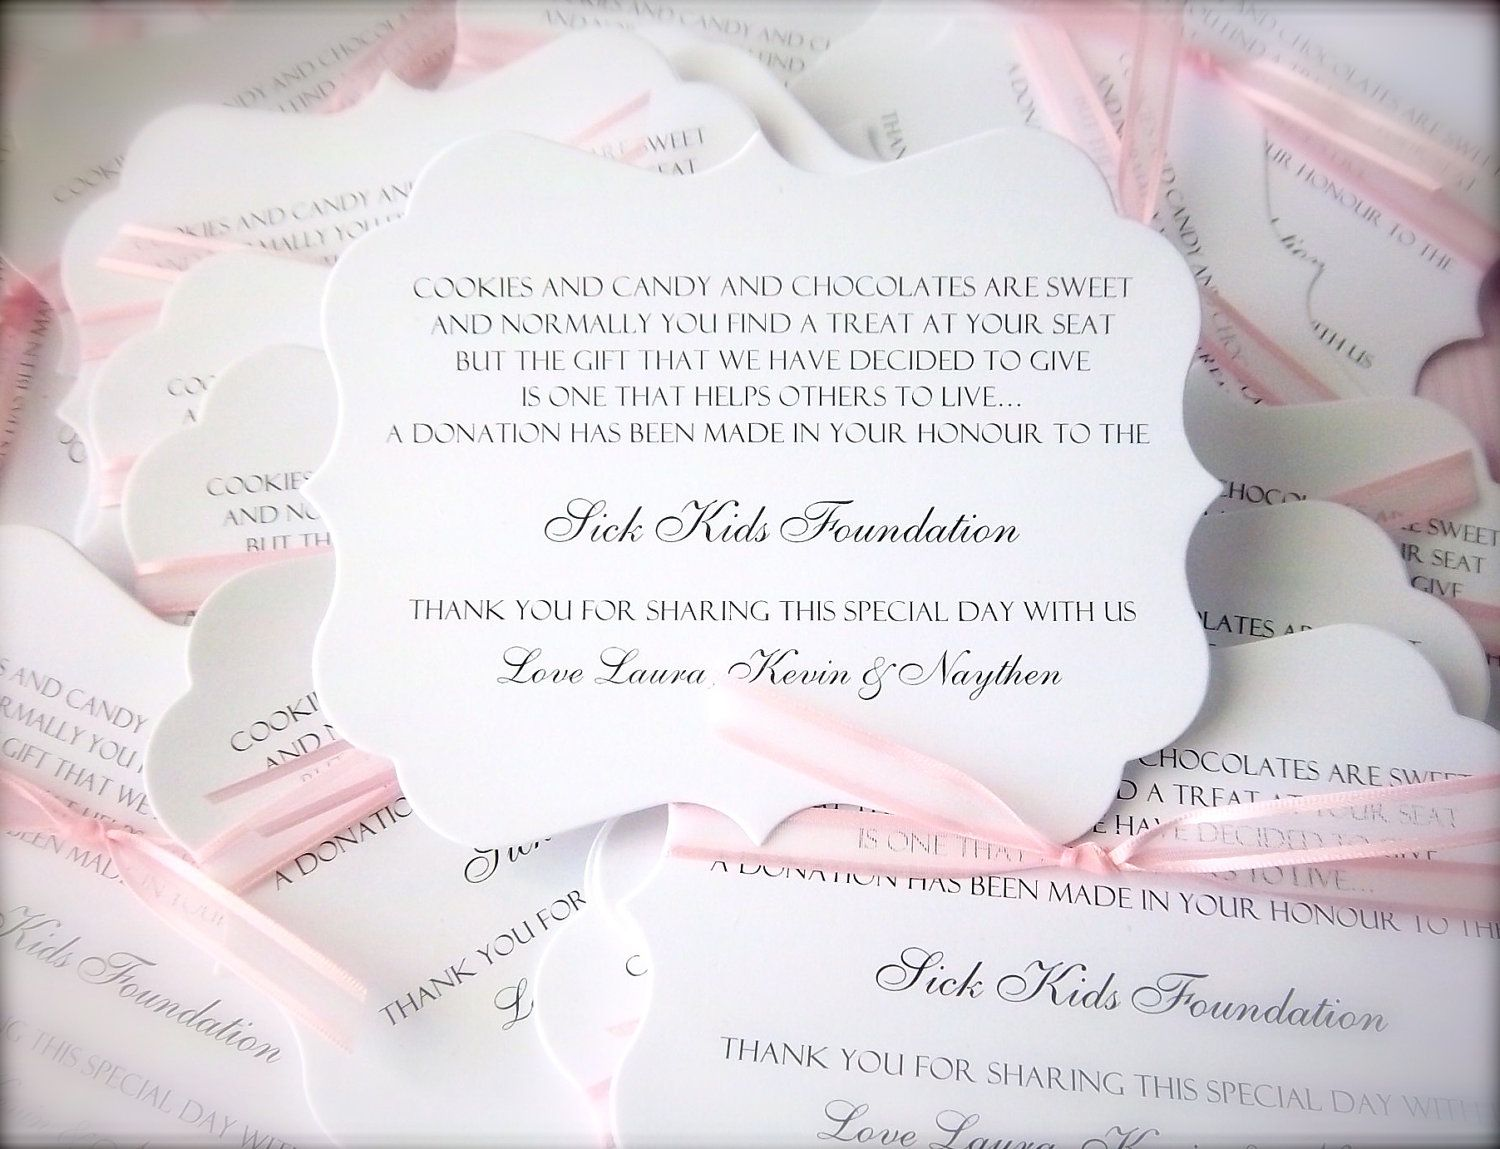 300 Donation Cards Charity Favor By ExQuisiteInVitation